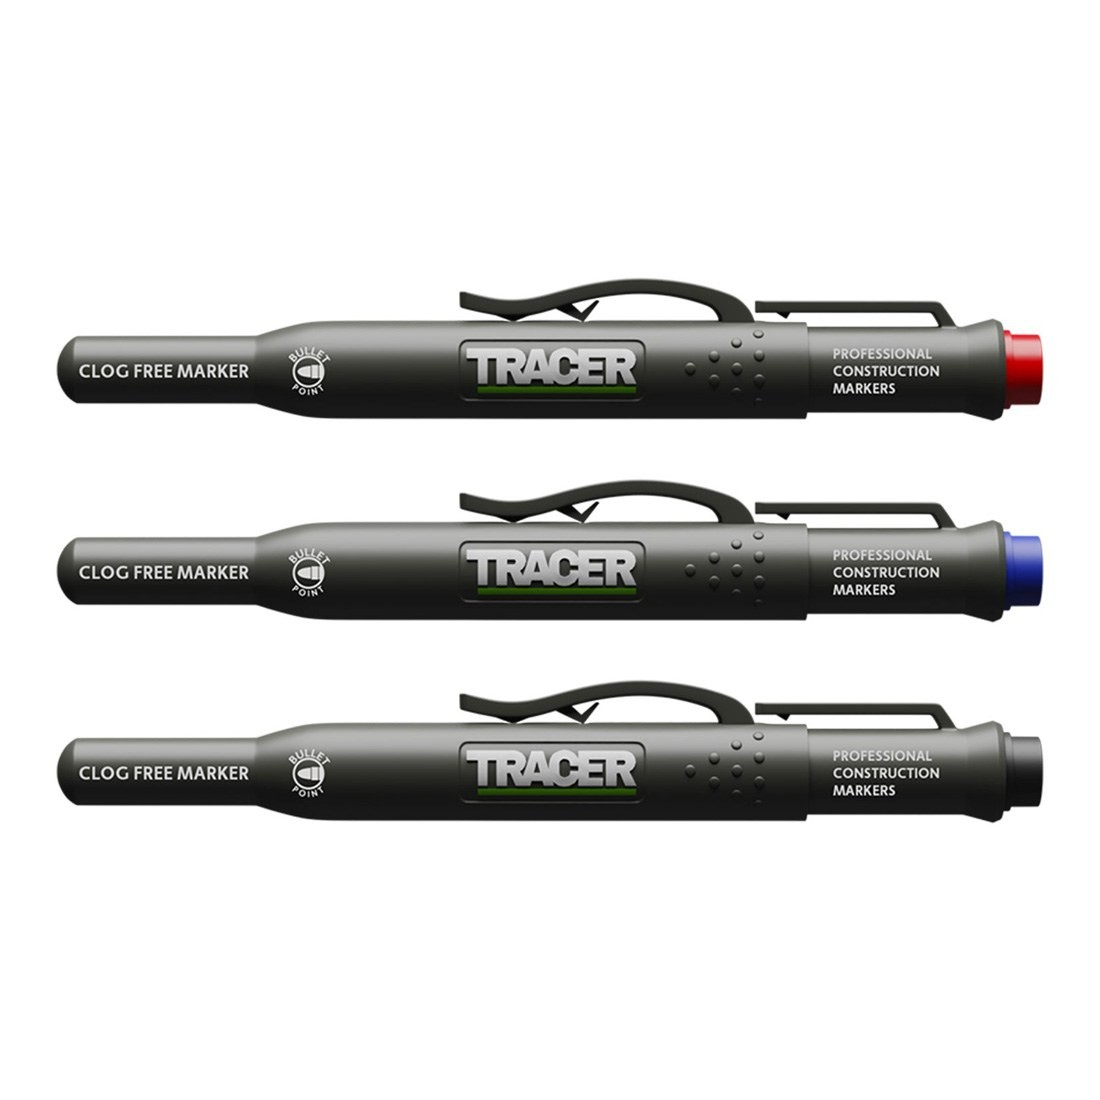 Acer Tracer ACF-MK3 Pack of 3 Clog Free Markers (1x Black / 1x Blue / 1x Red) C/W Site Holsters